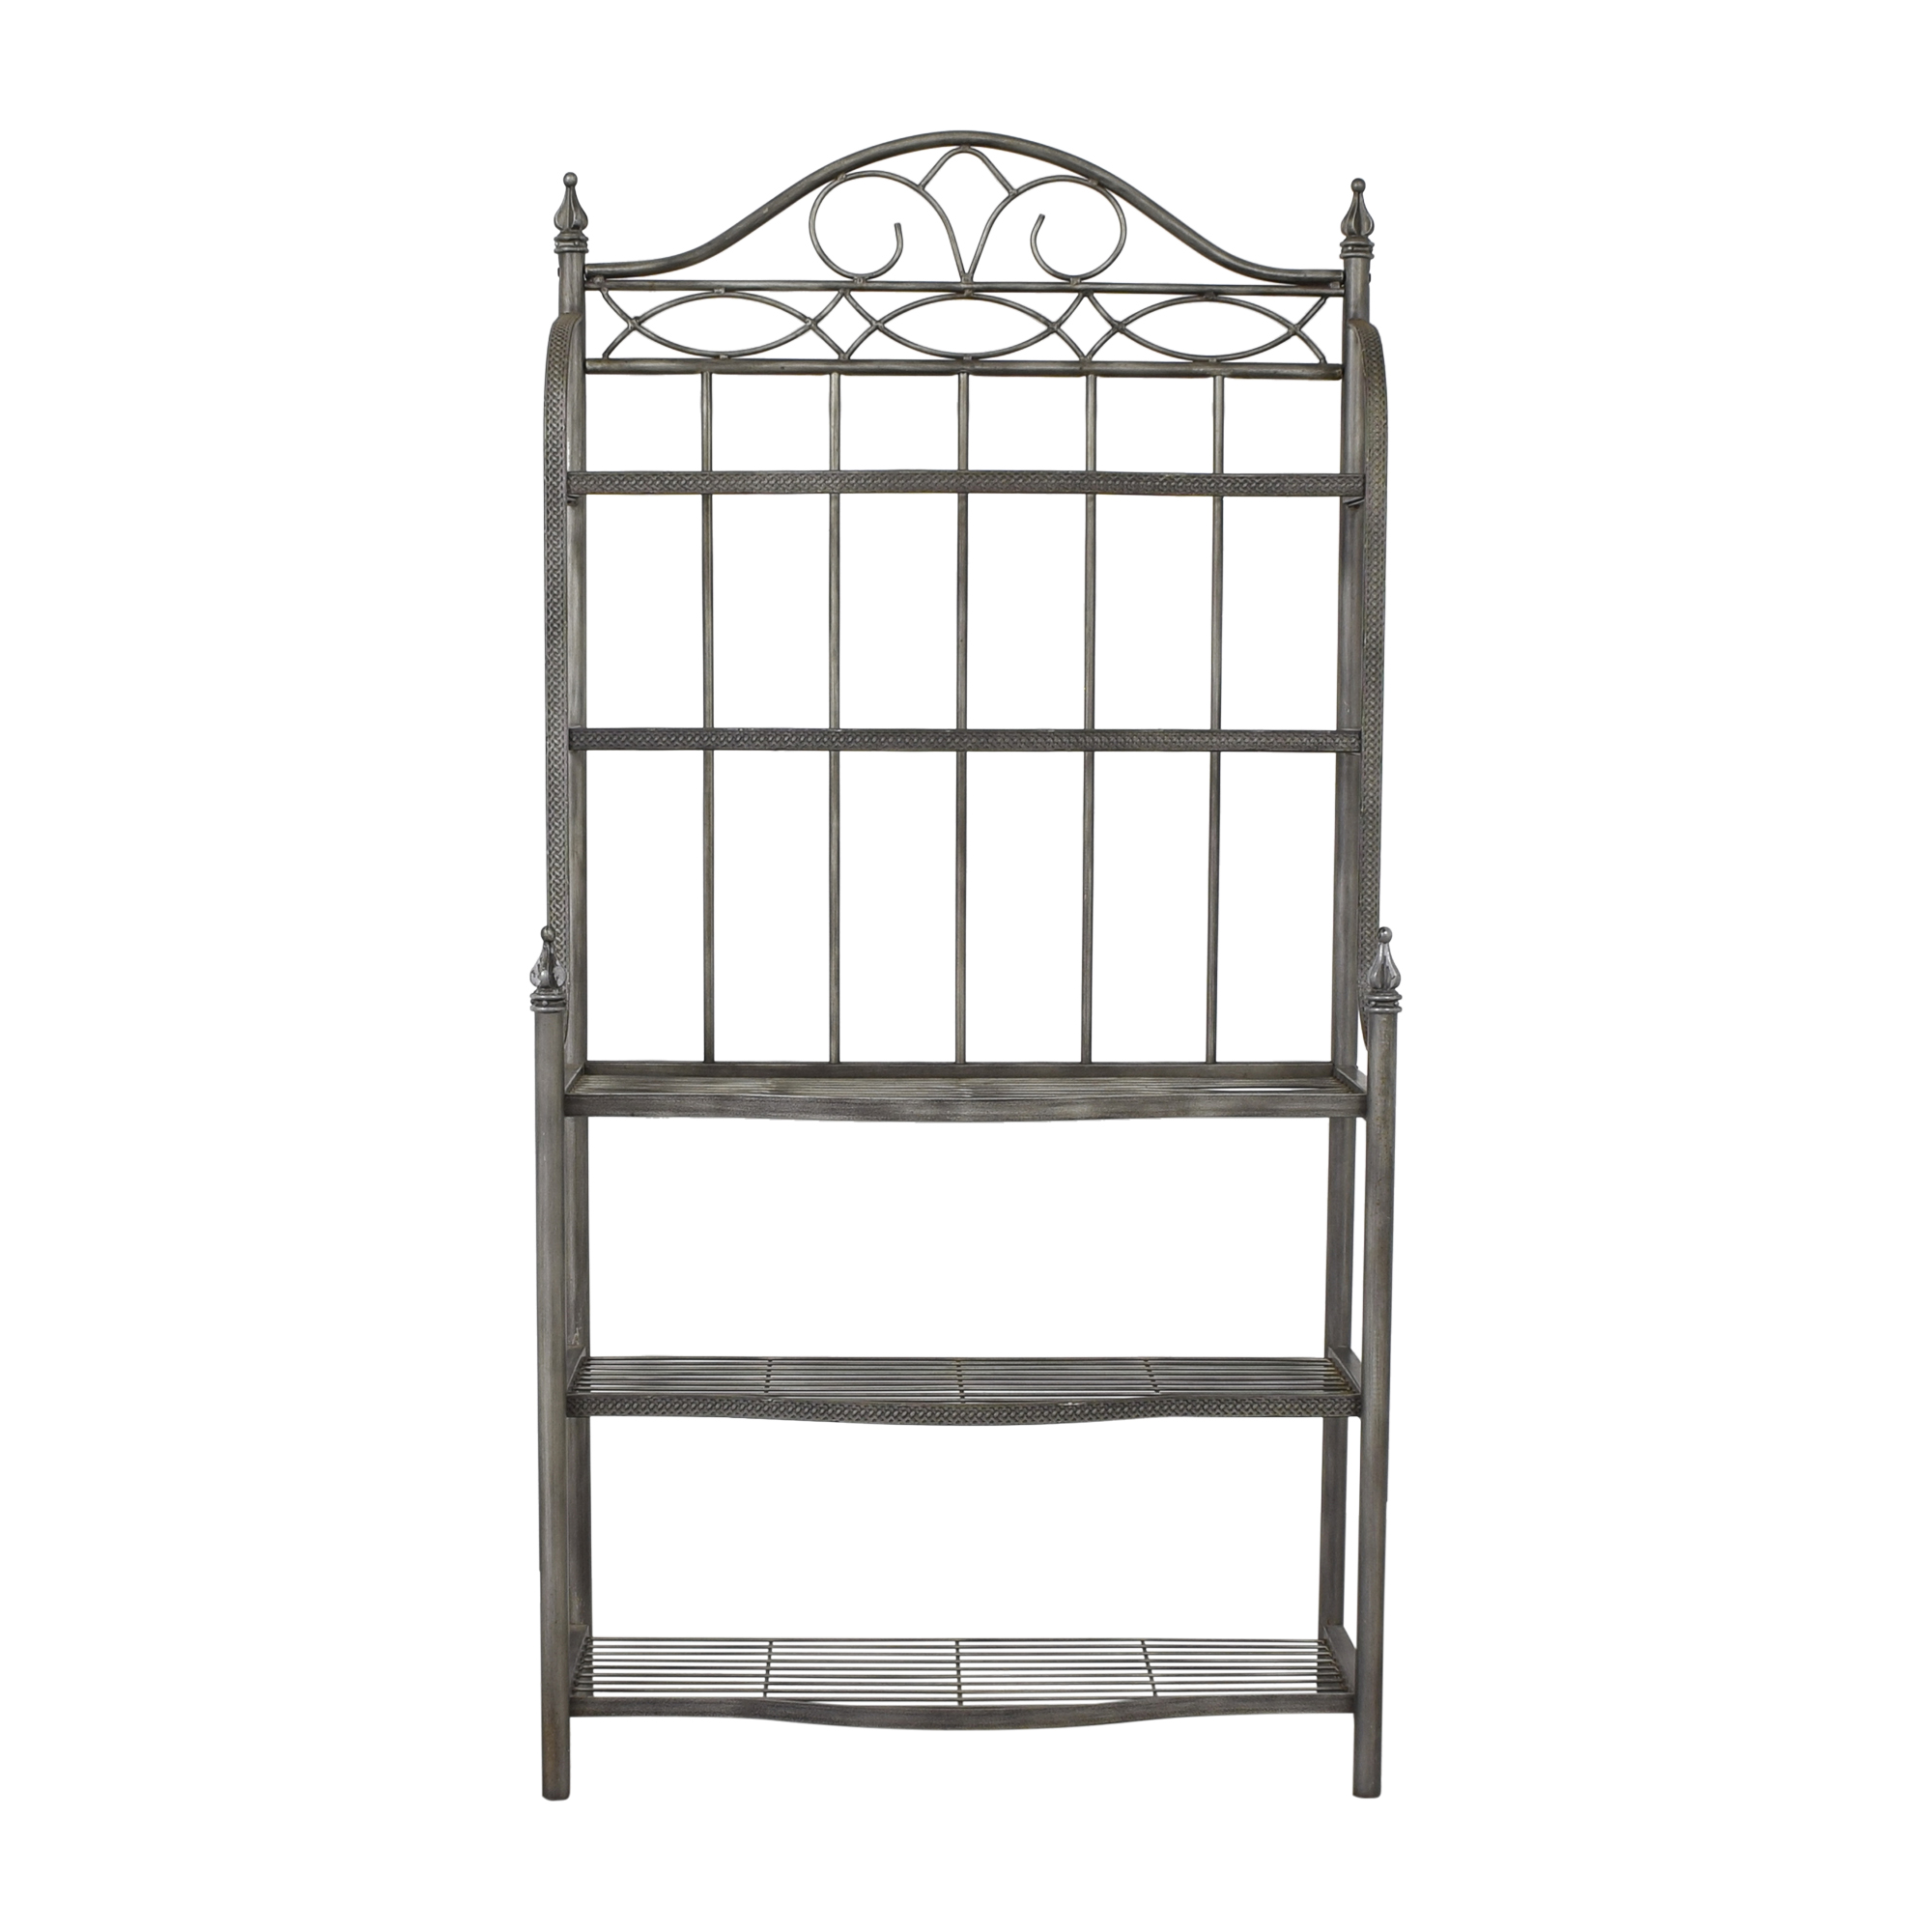 Decorative Bakers Rack second hand